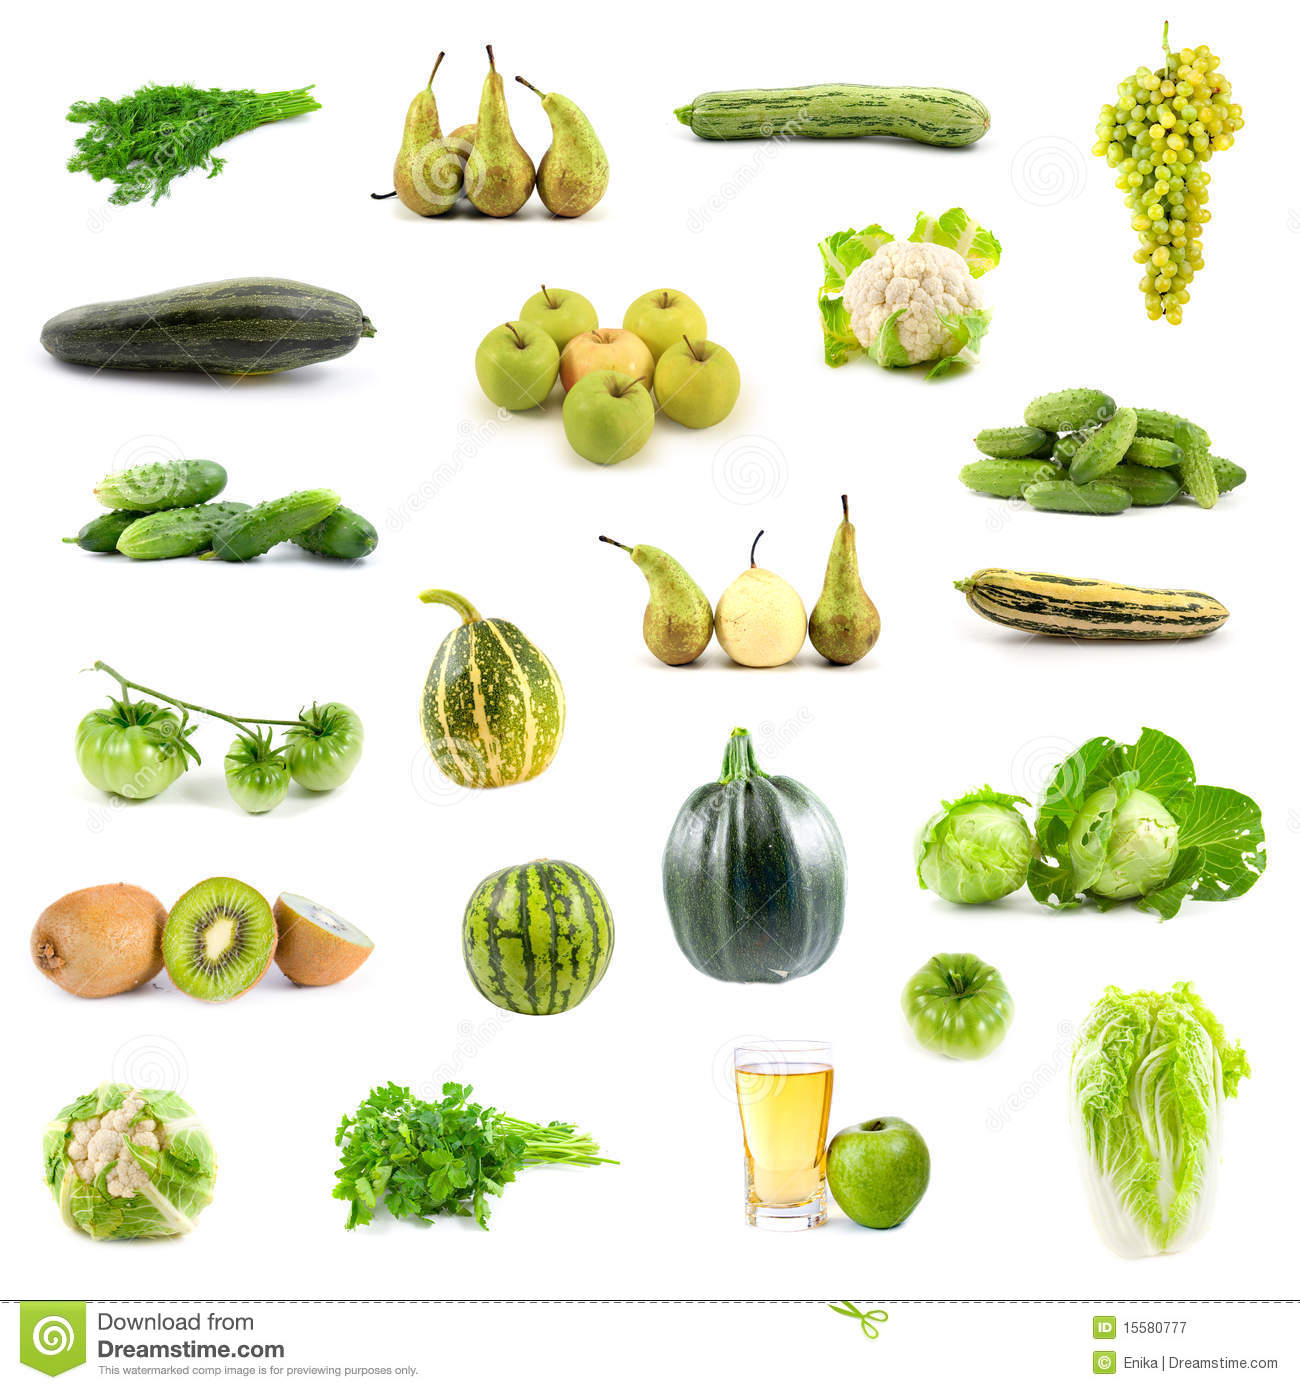 Broccoli Soorten Big Collection Of Green Vegetables And Fruits Stock Image